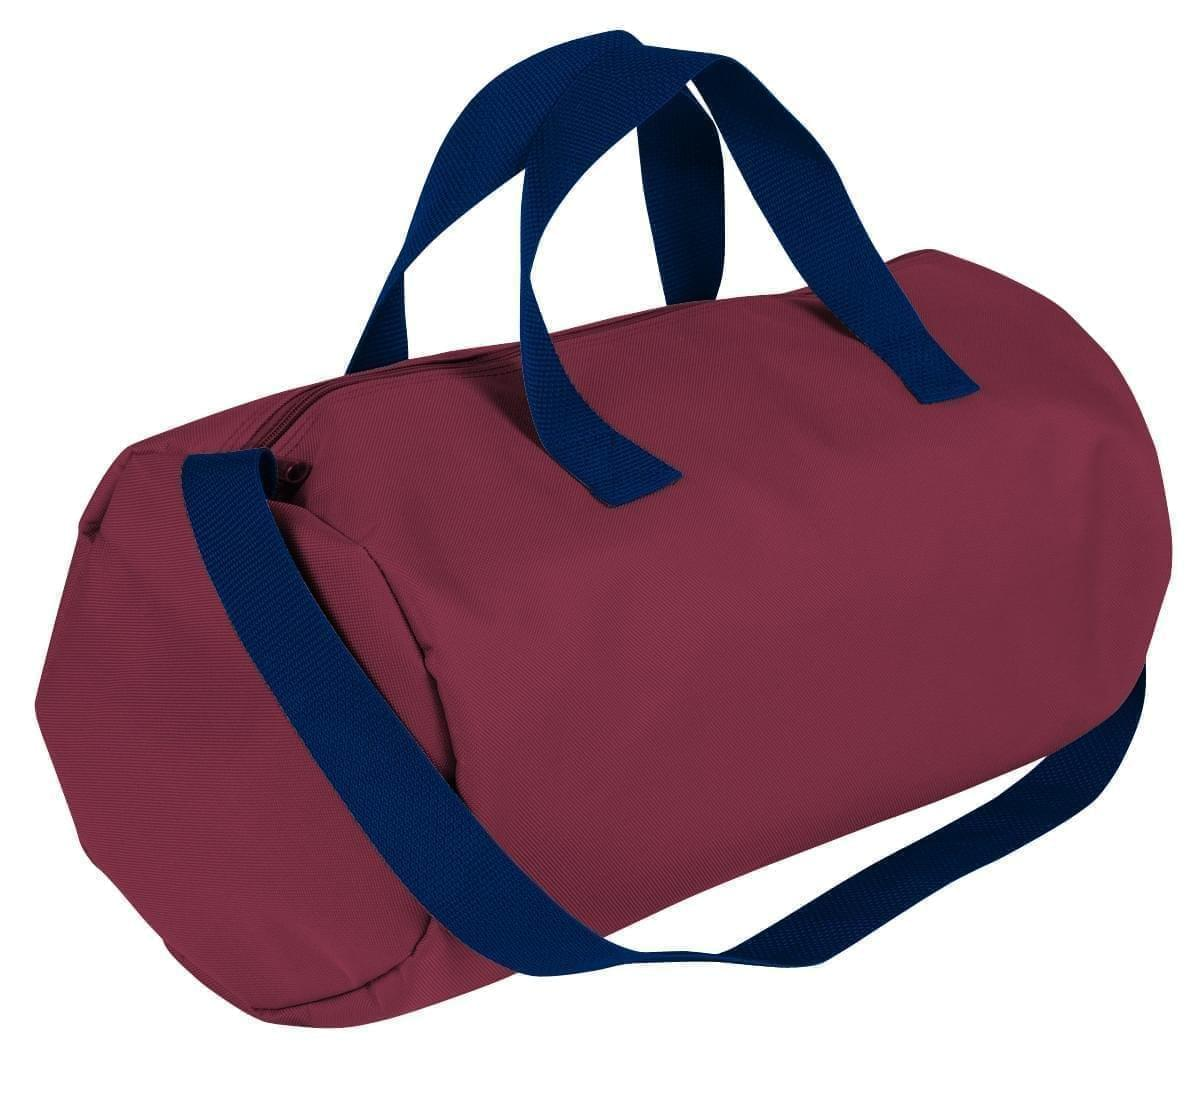 USA Made Nylon Poly Gym Roll Bags, Burgundy-Navy, ROCX31AAQZ